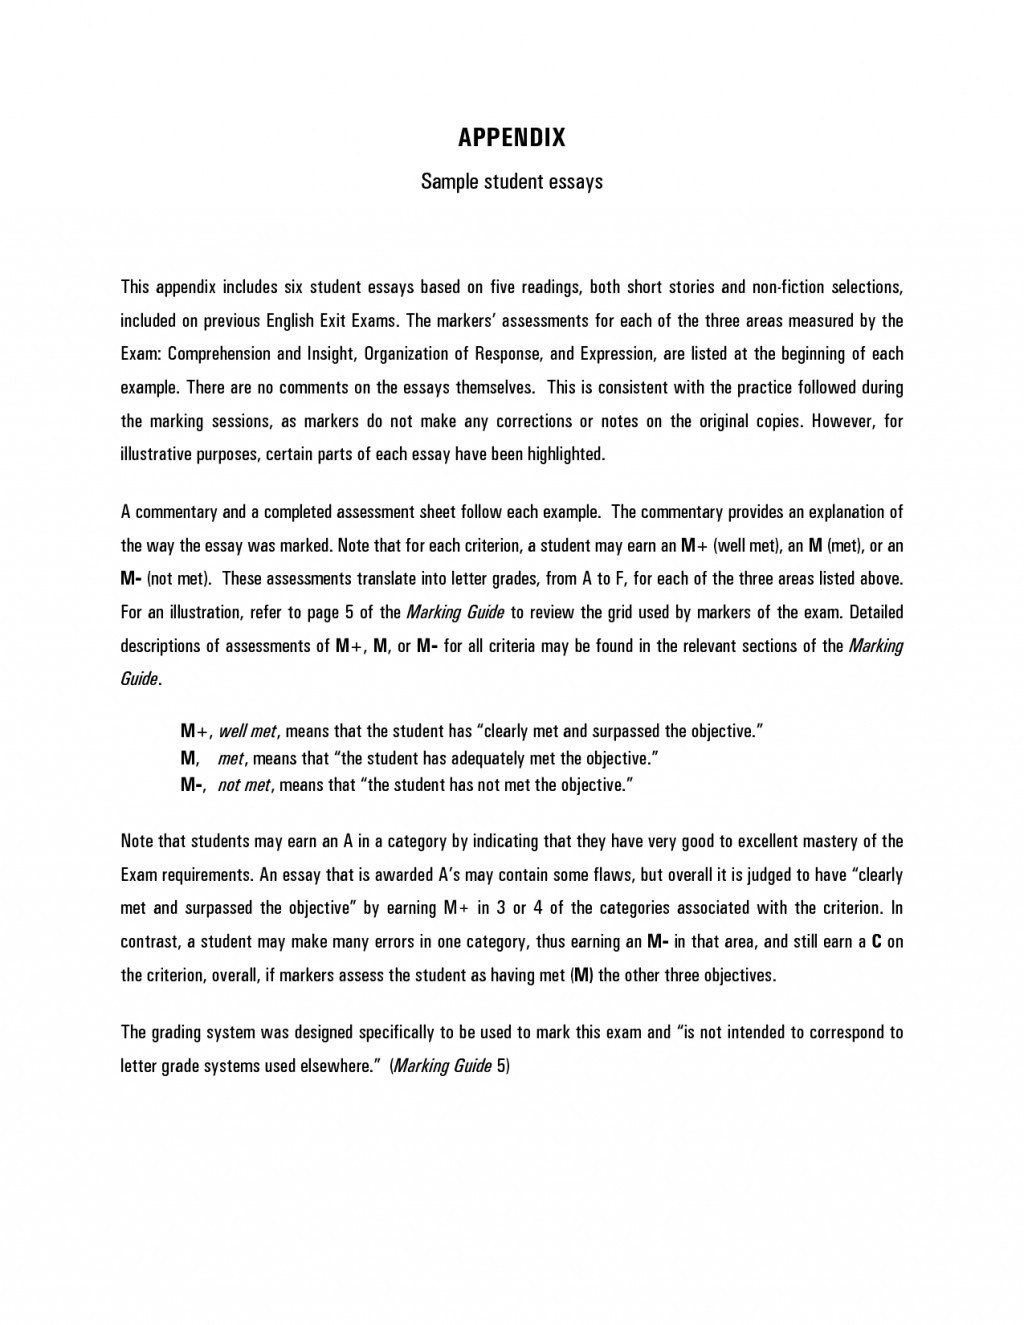 005 Essay Example Examples Forgh School Writing Format Students Alexandrasdesign Co Topics Argumentative Essays Photo Cover Pdf Tagalog In Marathi Secondary India Kannada Unique For High Personal Statement Sample 5 Paragraph Large